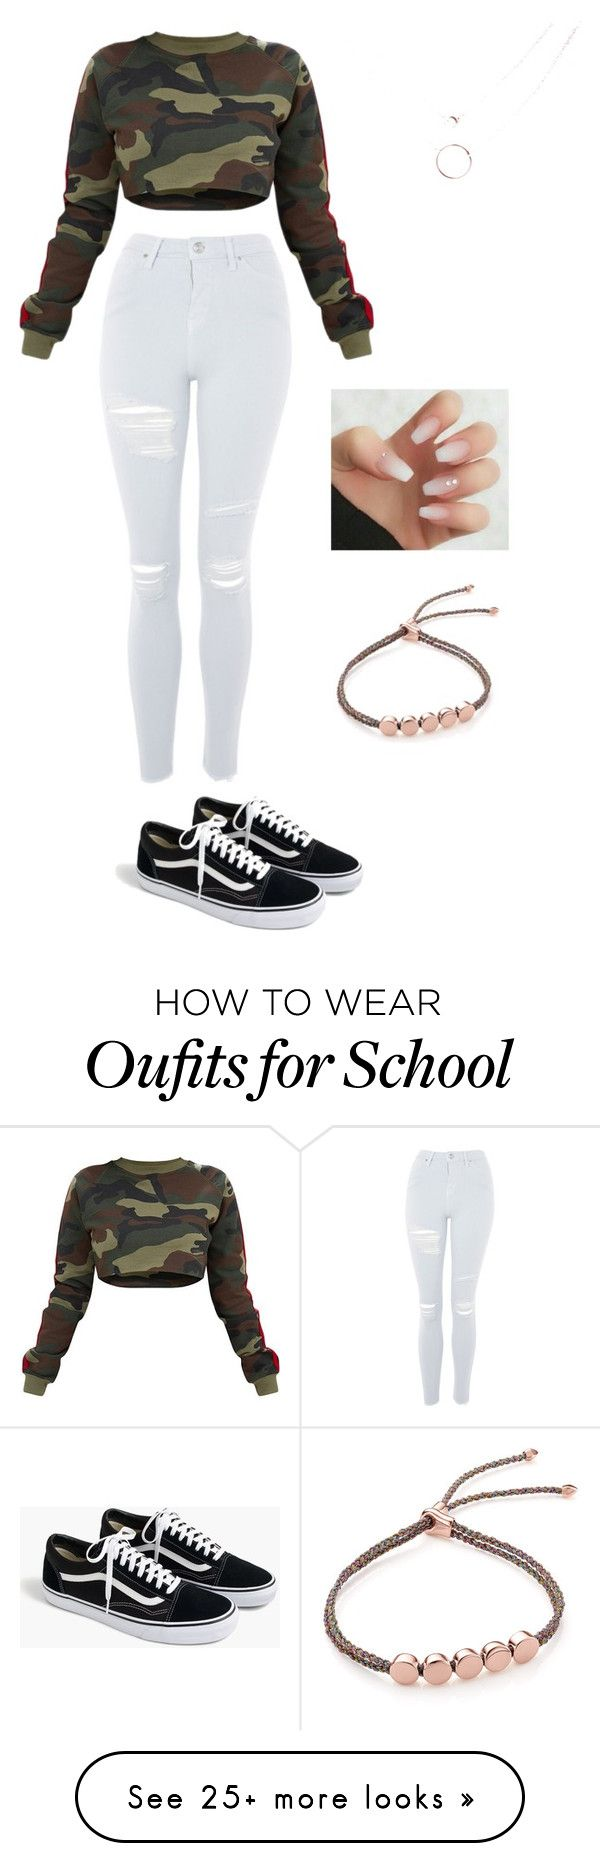 """outside school"" by xokaiden on Polyvore featuring Topshop, J.Crew and Monica Vinader"